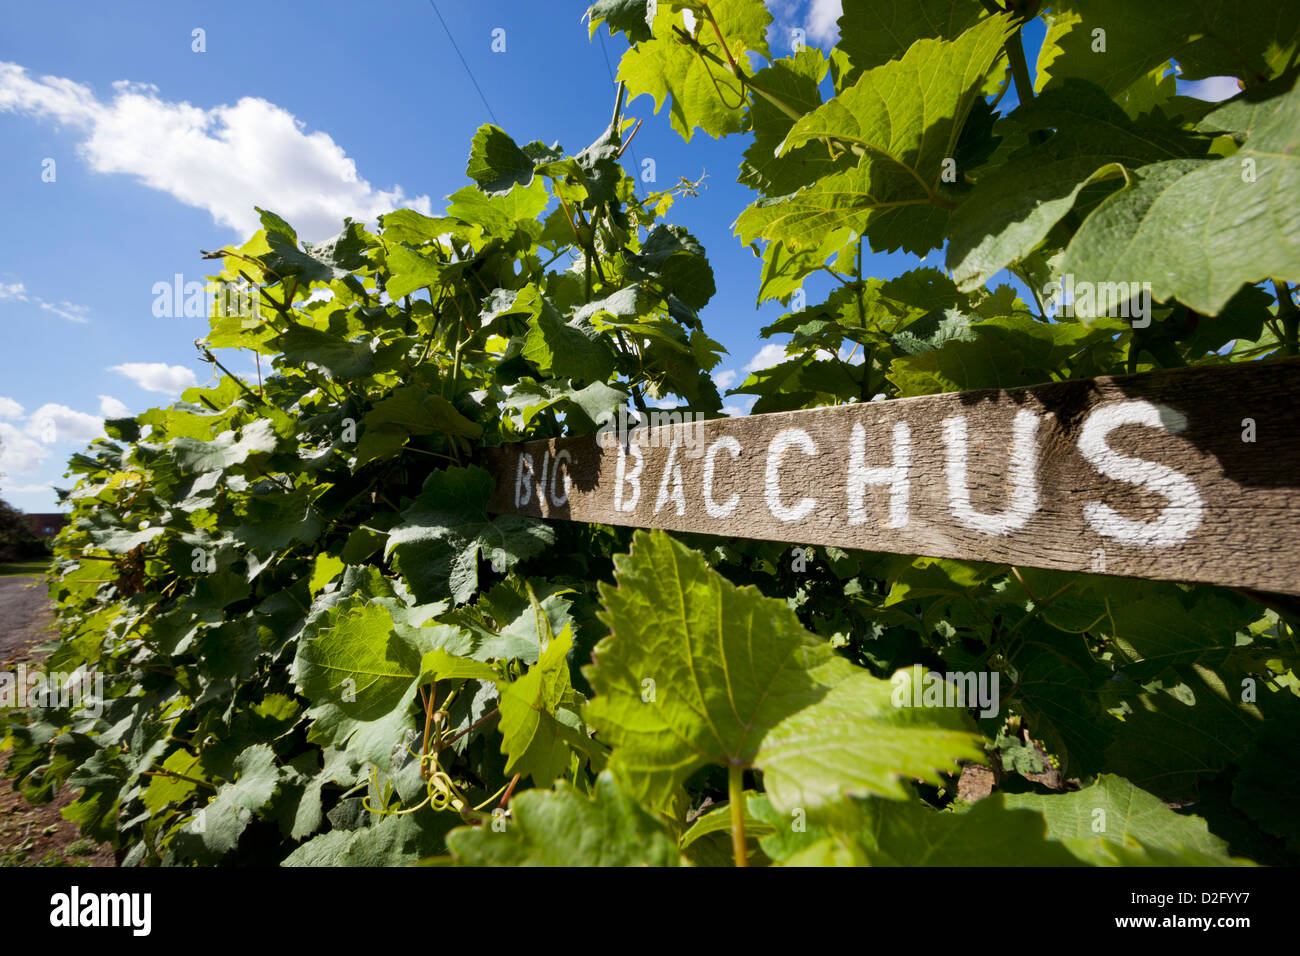 Bacchus vines at the Chapel Down Winery - Stock Image